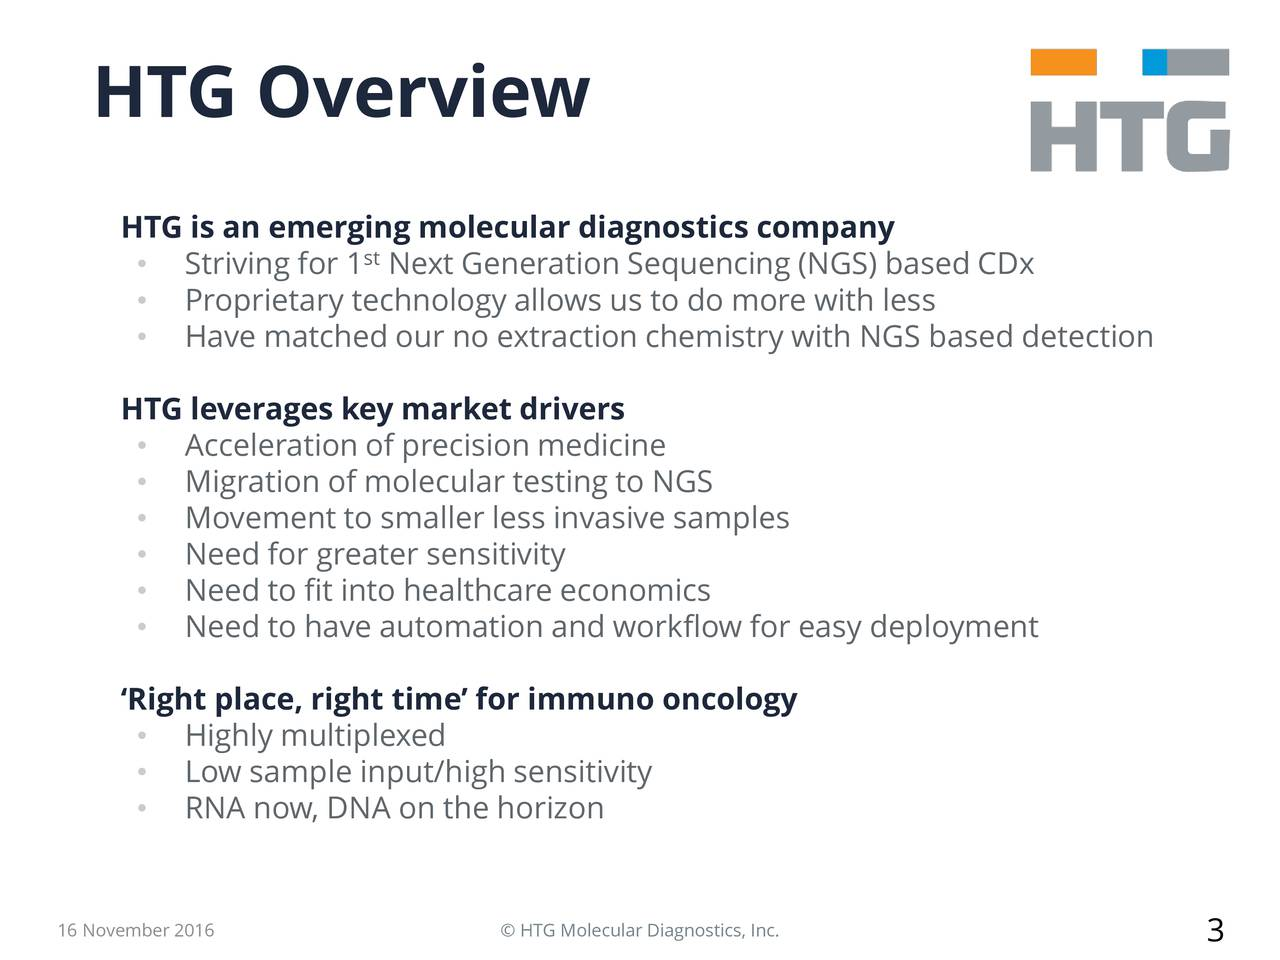 HTG is an emerging molecular diagnostics company Striving for 1 Next Generation Sequencing (NGS) based CDx Proprietary technology allows us to do more with less Have matched our no extraction chemistry with NGS based detection HTG leverages key market drivers Acceleration of precision medicine Migration of molecular testing to NGS Movement to smaller less invasive samples Need for greater sensitivity Need to fit into healthcare economics Need to have automation and workflow for easy deployment Right place, right time for immuno oncology Highly multiplexed Low sample input/high sensitivity RNA now, DNA on the horizon 16 November 2016  HTG Molecular Diagnostics, Inc. 3